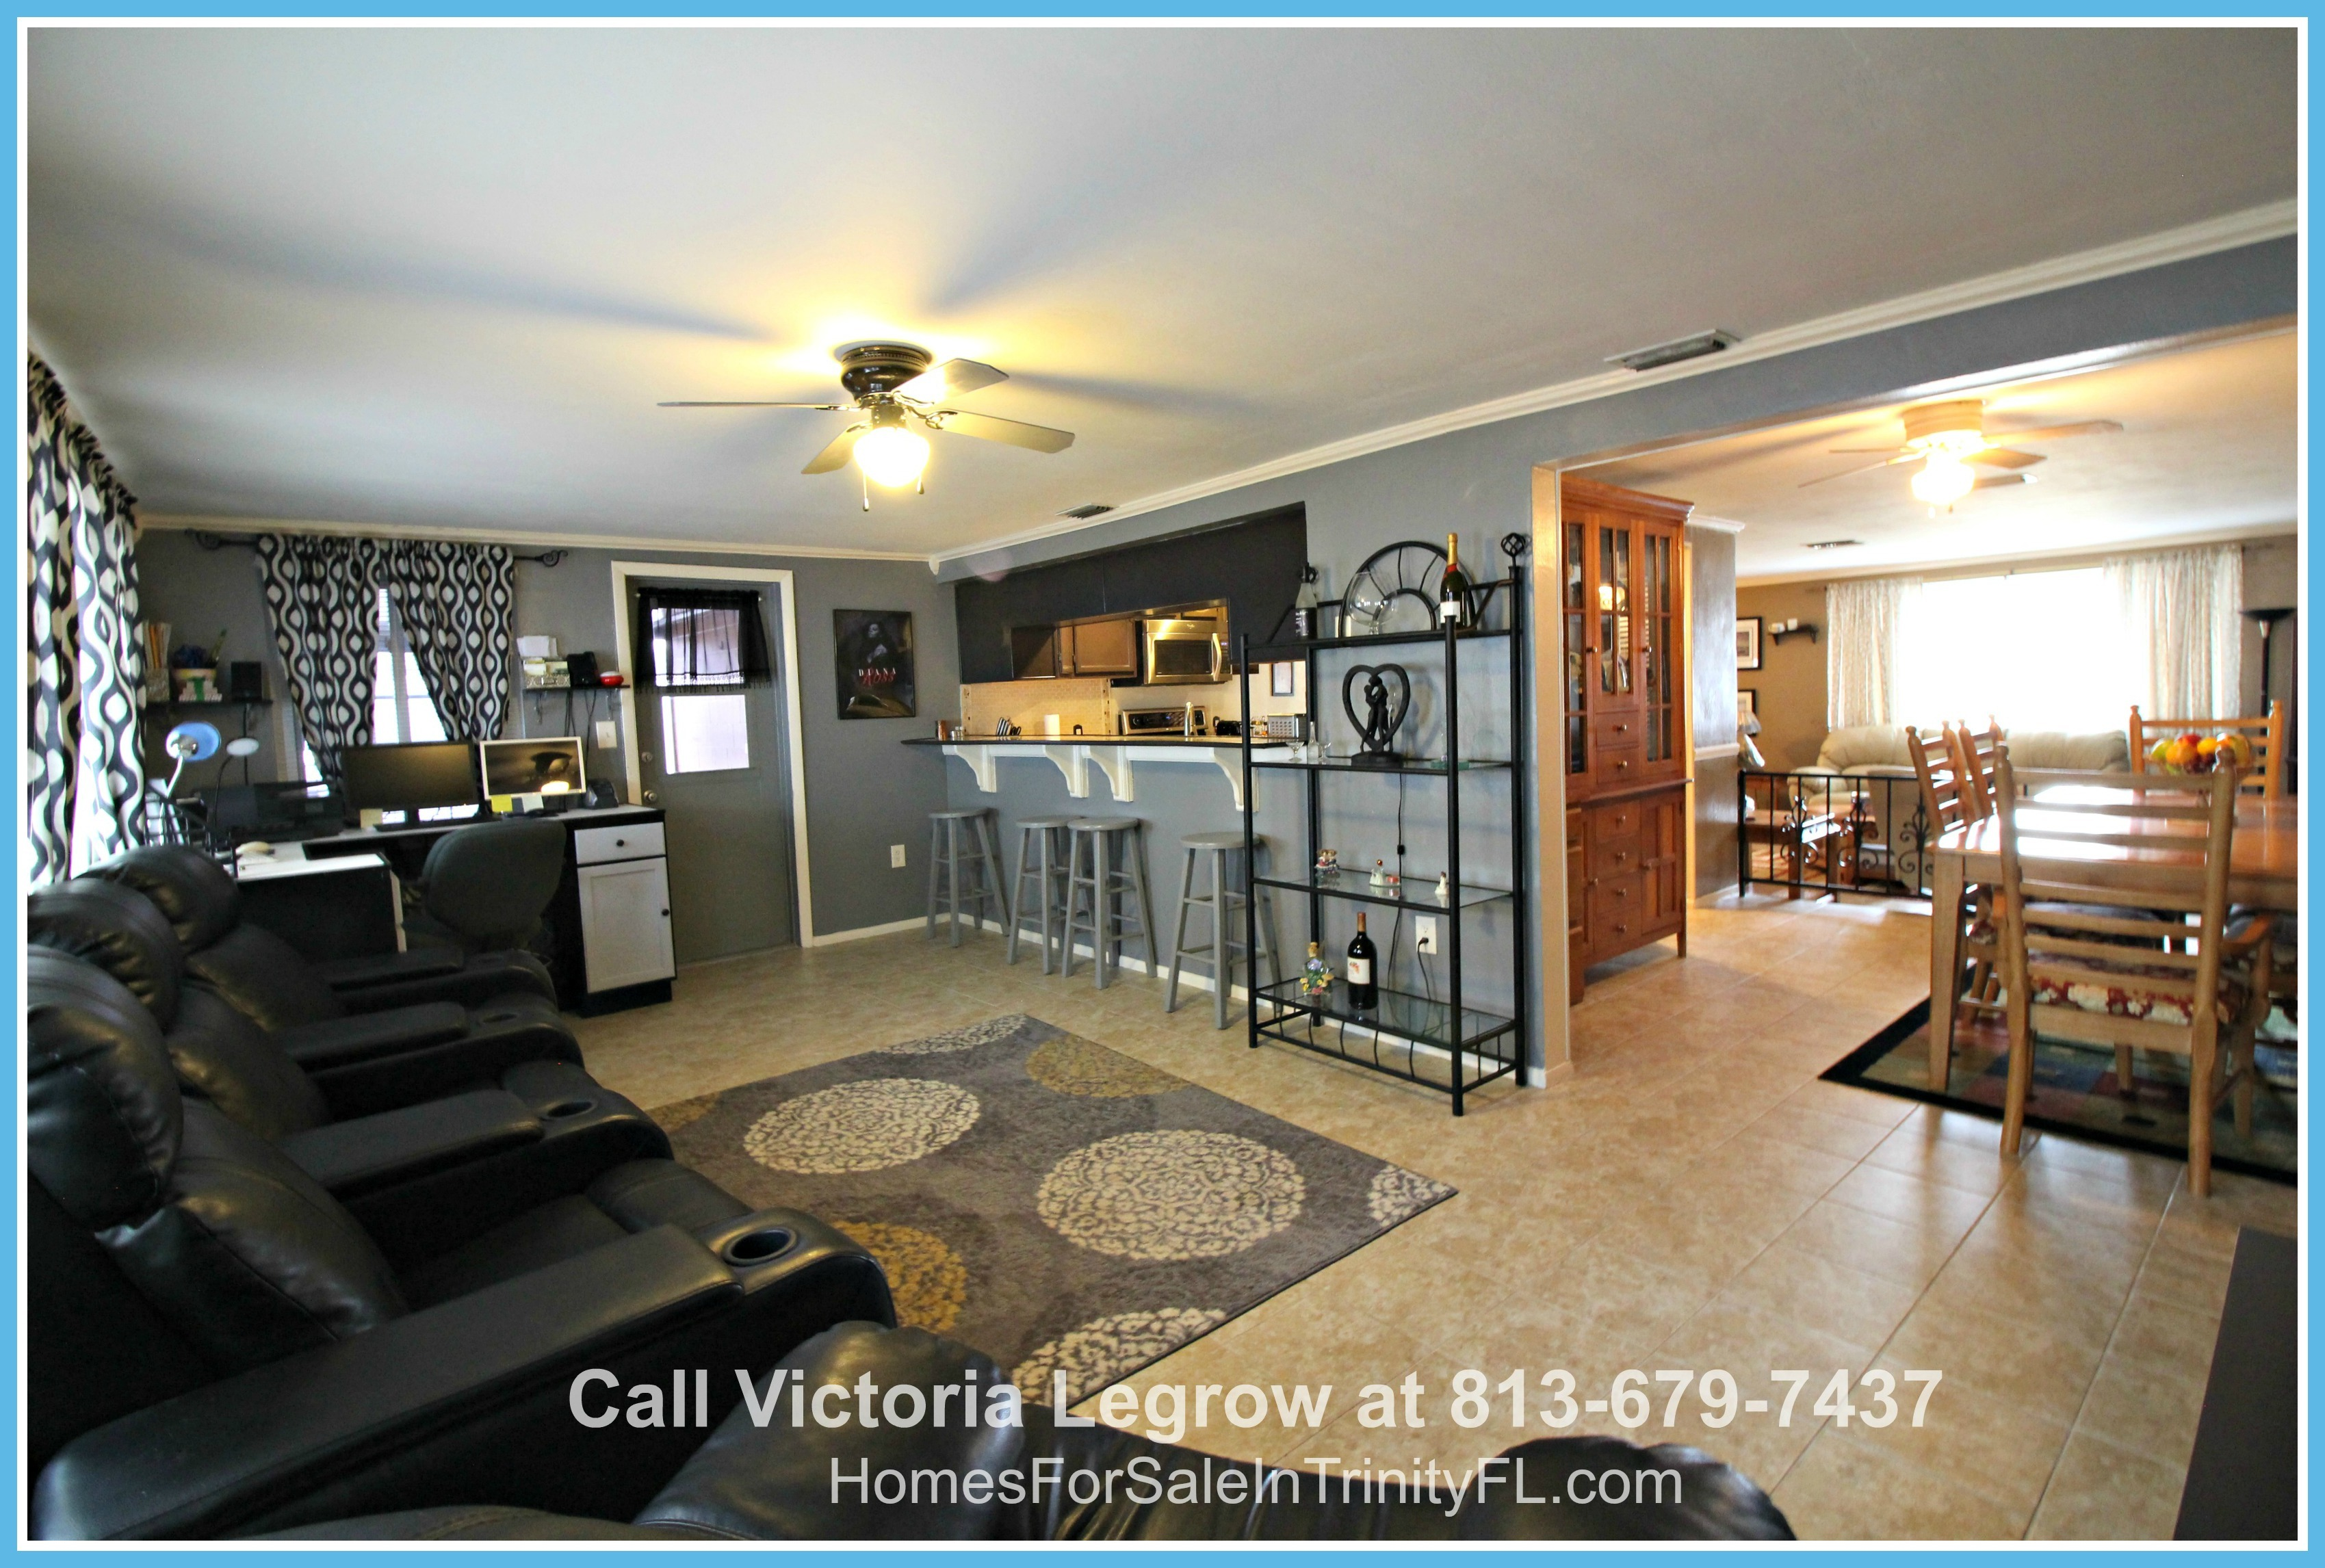 Homes for Sale in FL Holiday - Not only does this home have a kitchen/living room combination, it also has more!